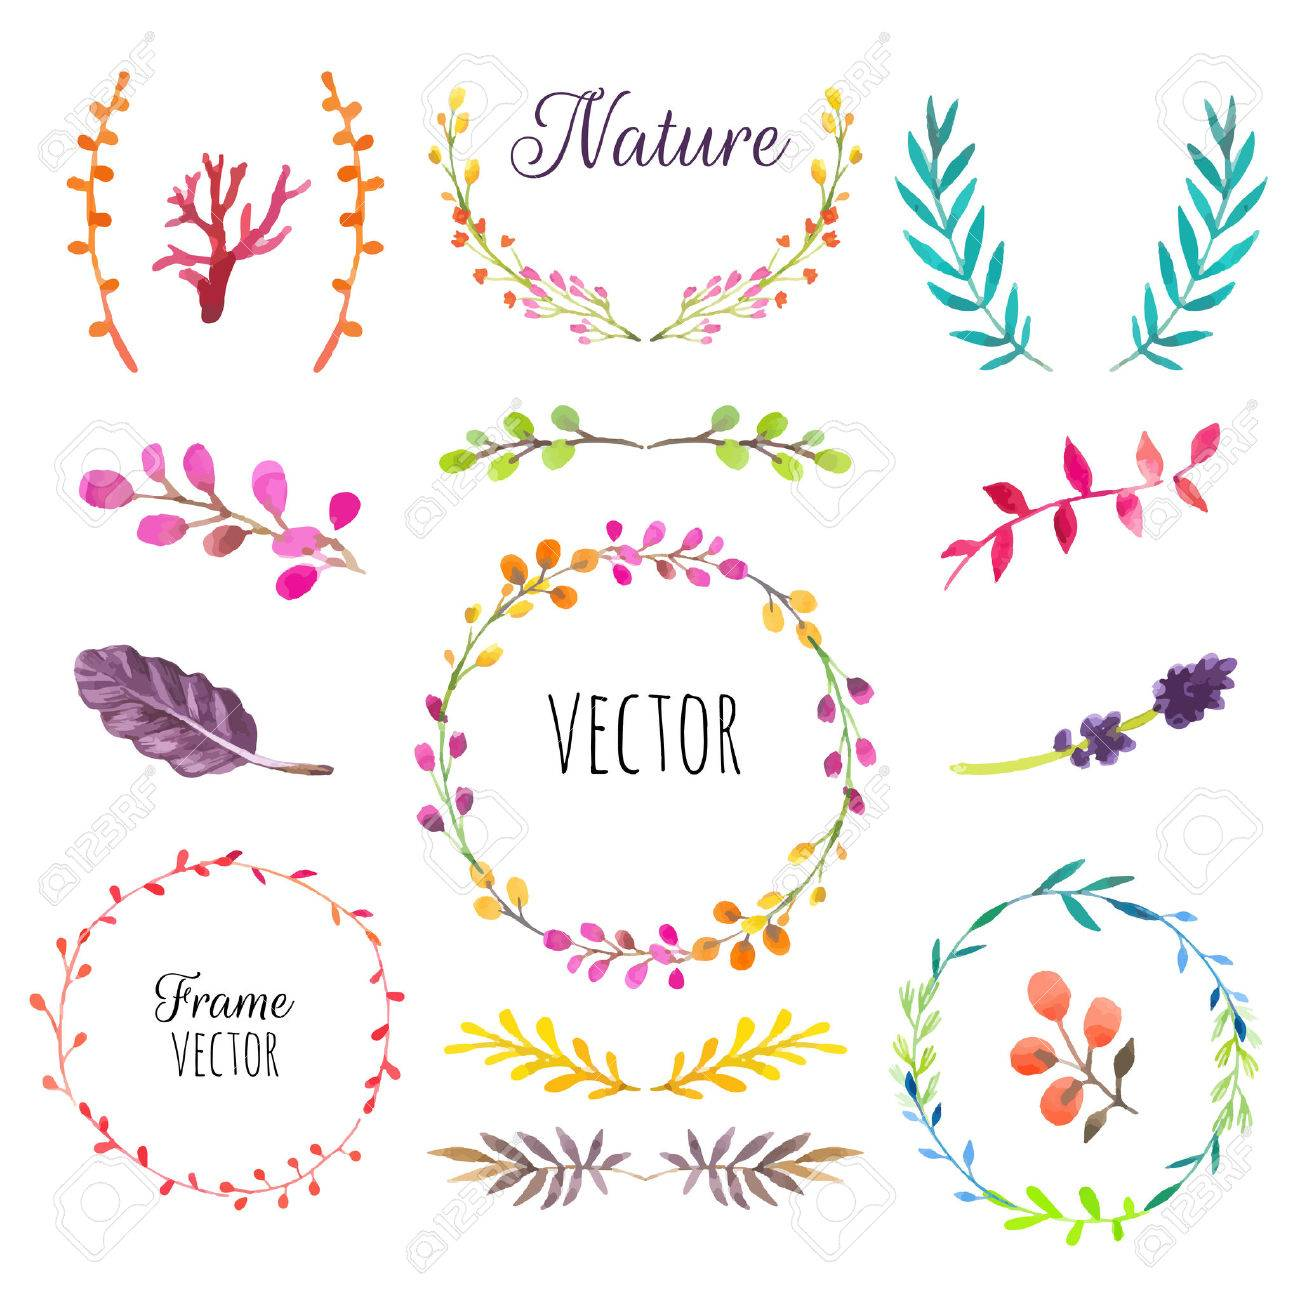 Of Wreaths Floral Motifs Watercolor Vintage Floral Trendy Set Of Wreaths